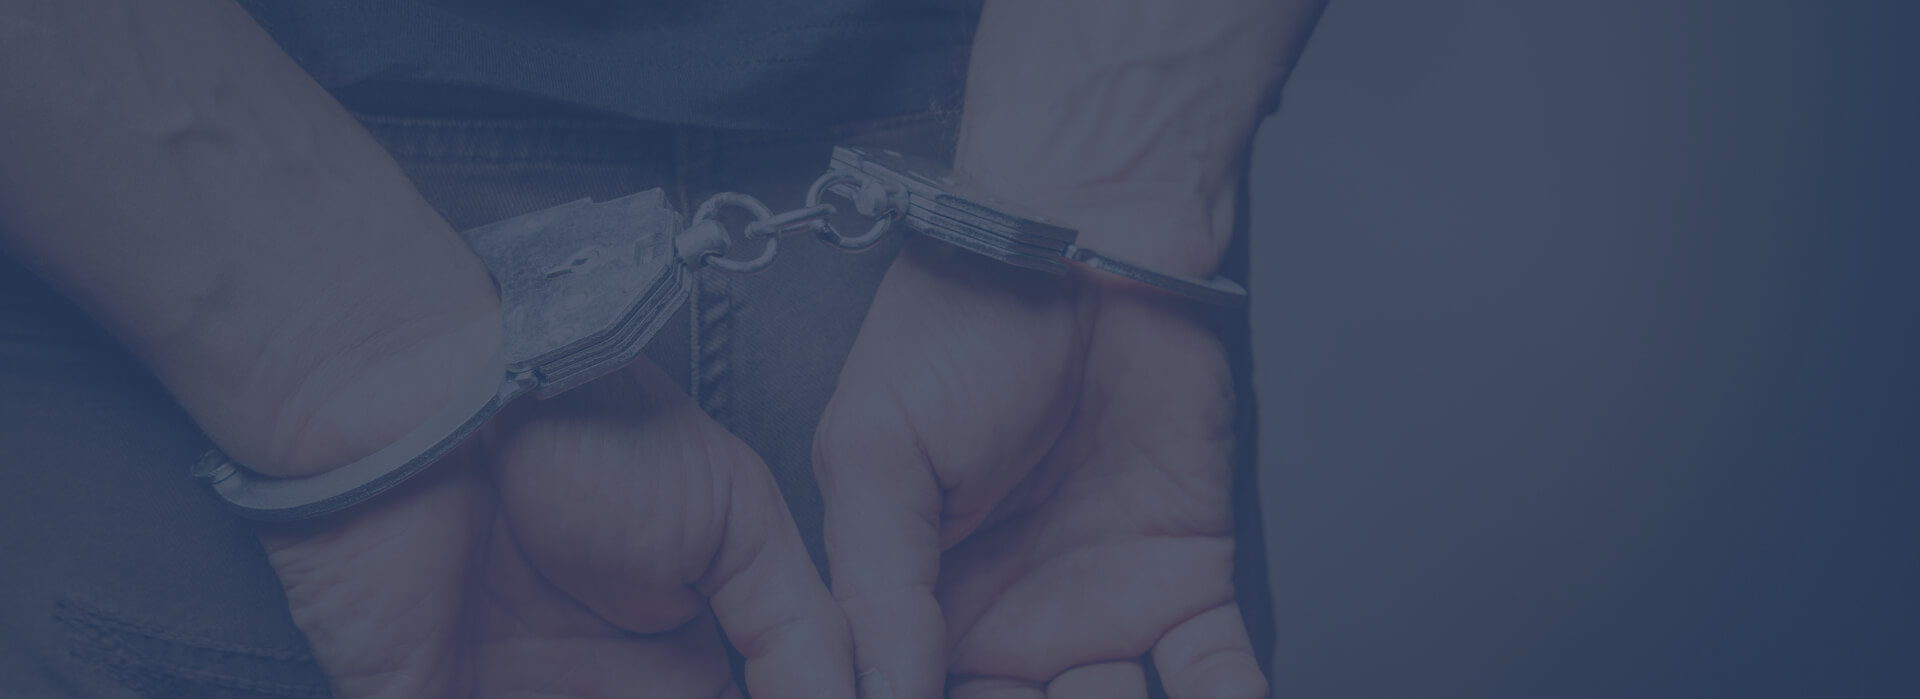 Man's hands close up, handcuffed behind his back